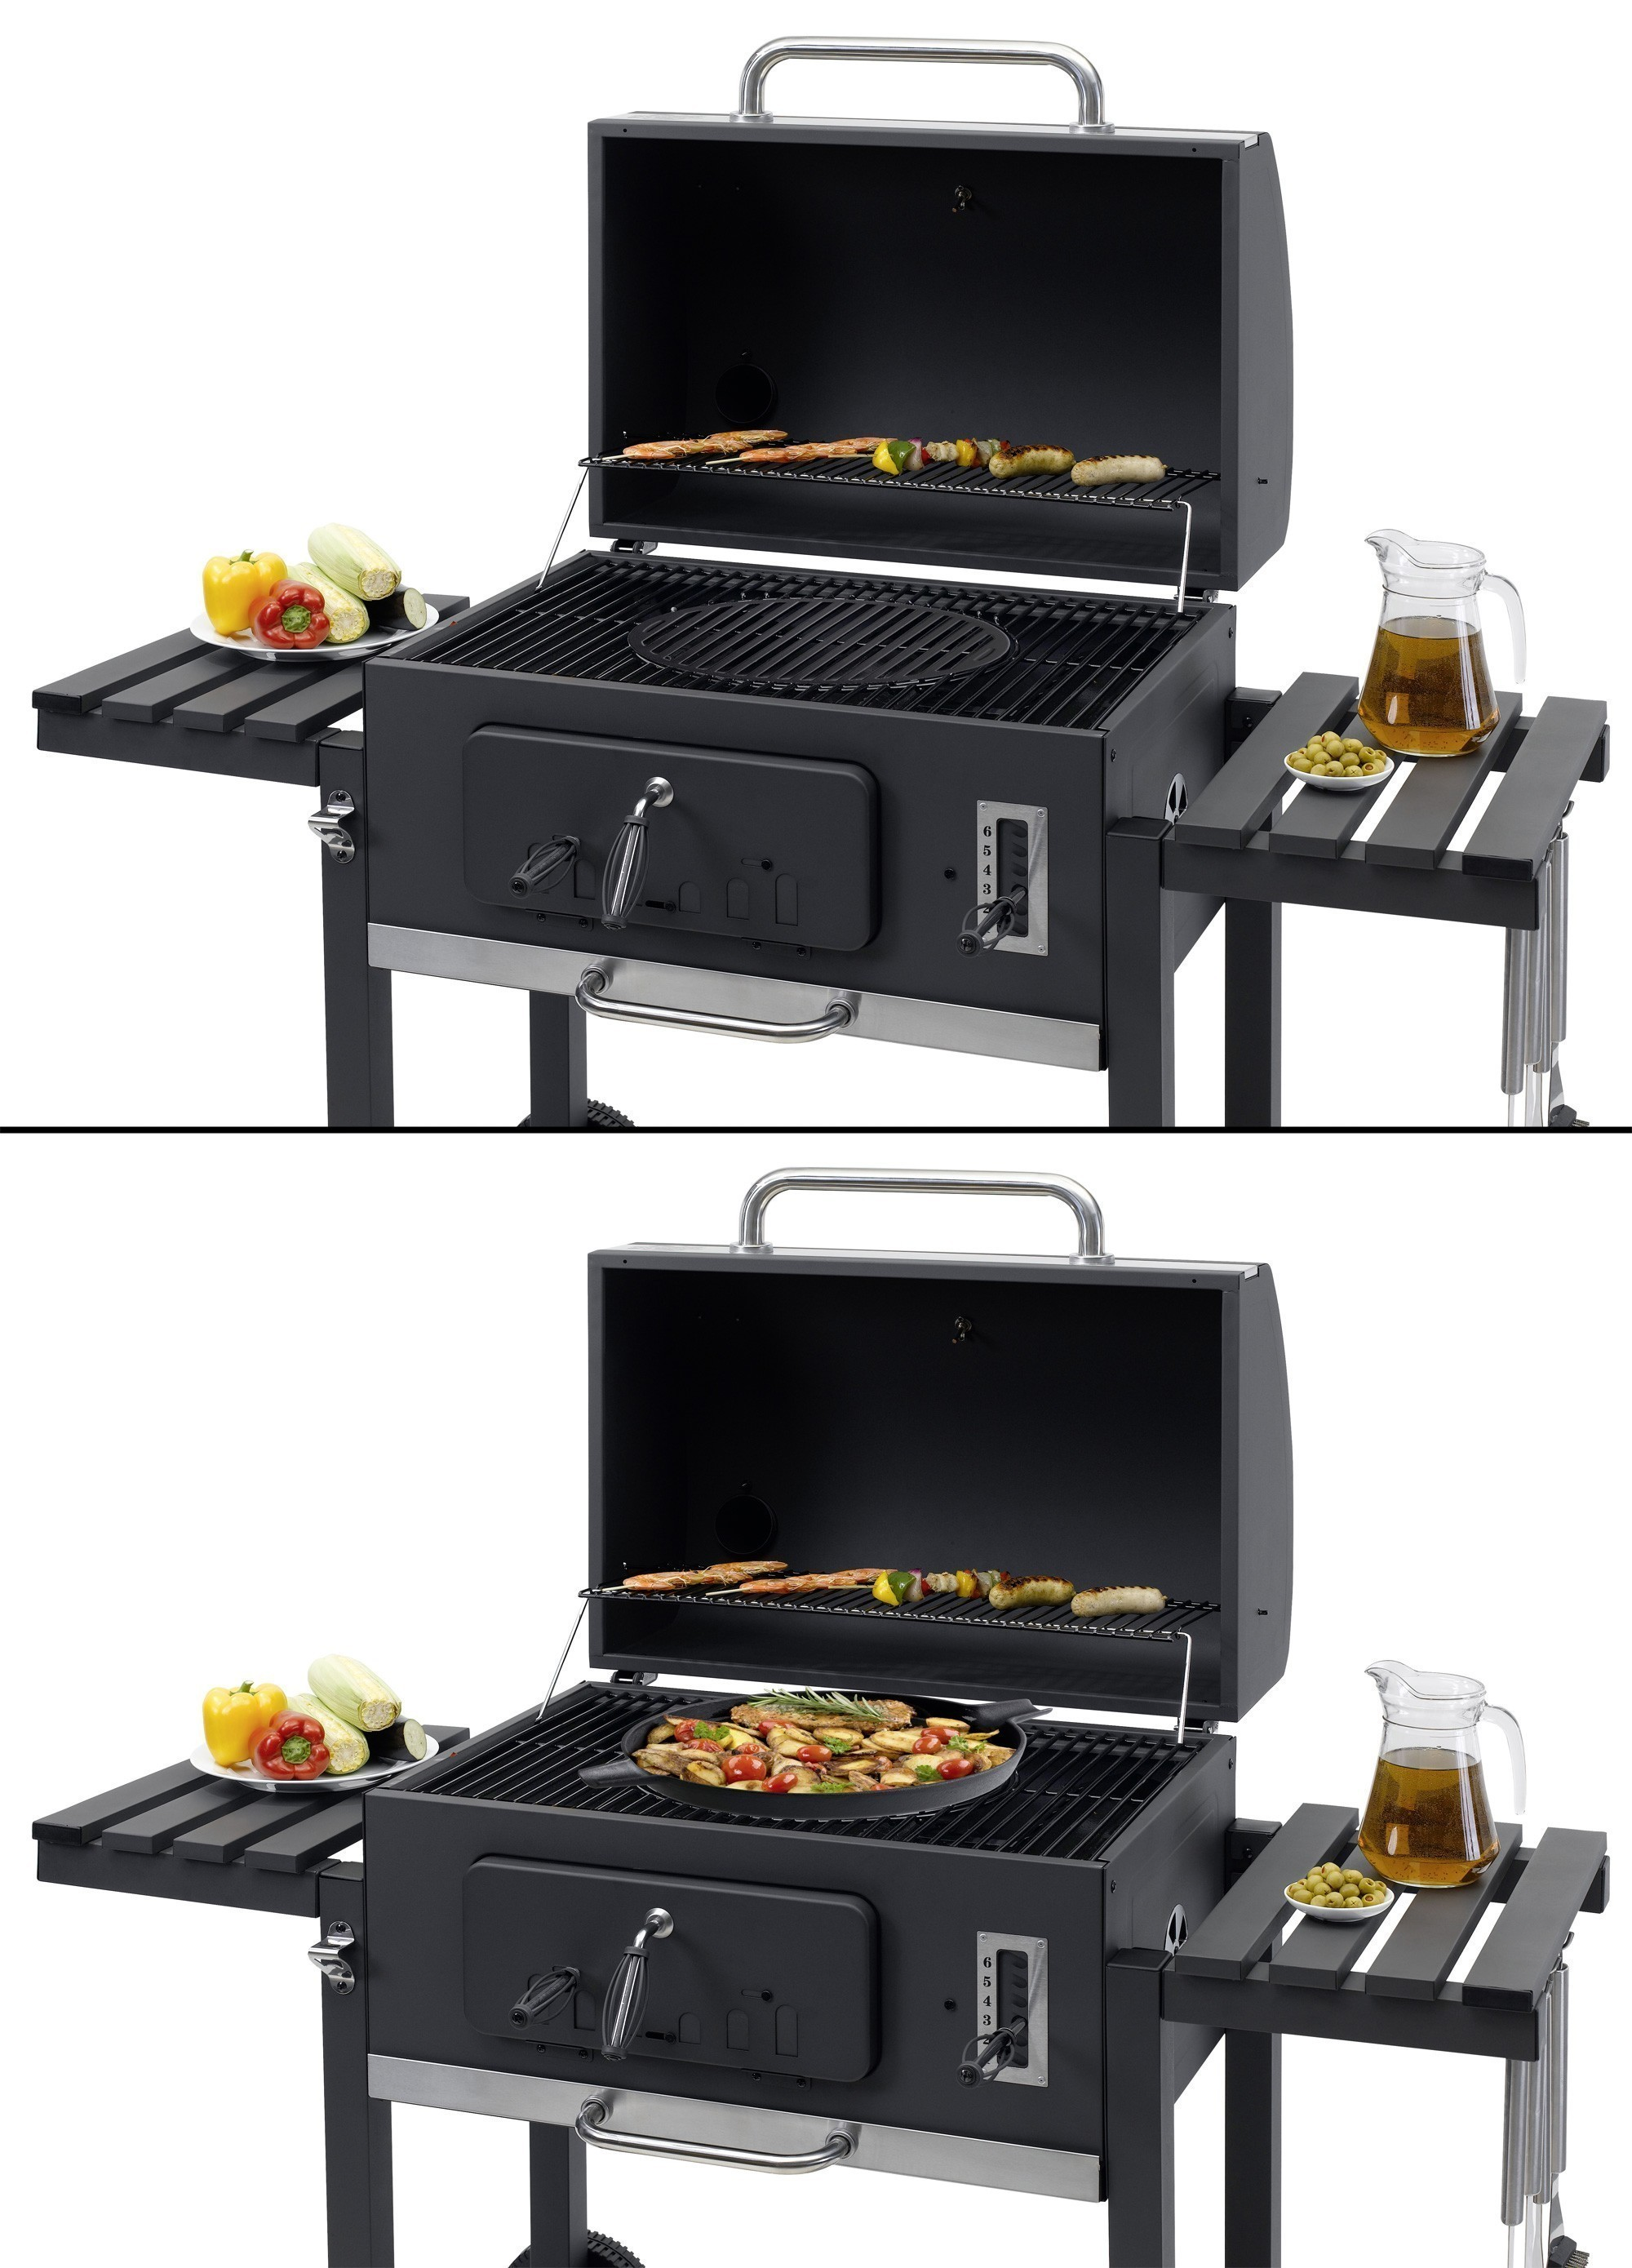 tepro holkohlegrill grillwagen toronto xxl grillfl che 71x46cm bei. Black Bedroom Furniture Sets. Home Design Ideas